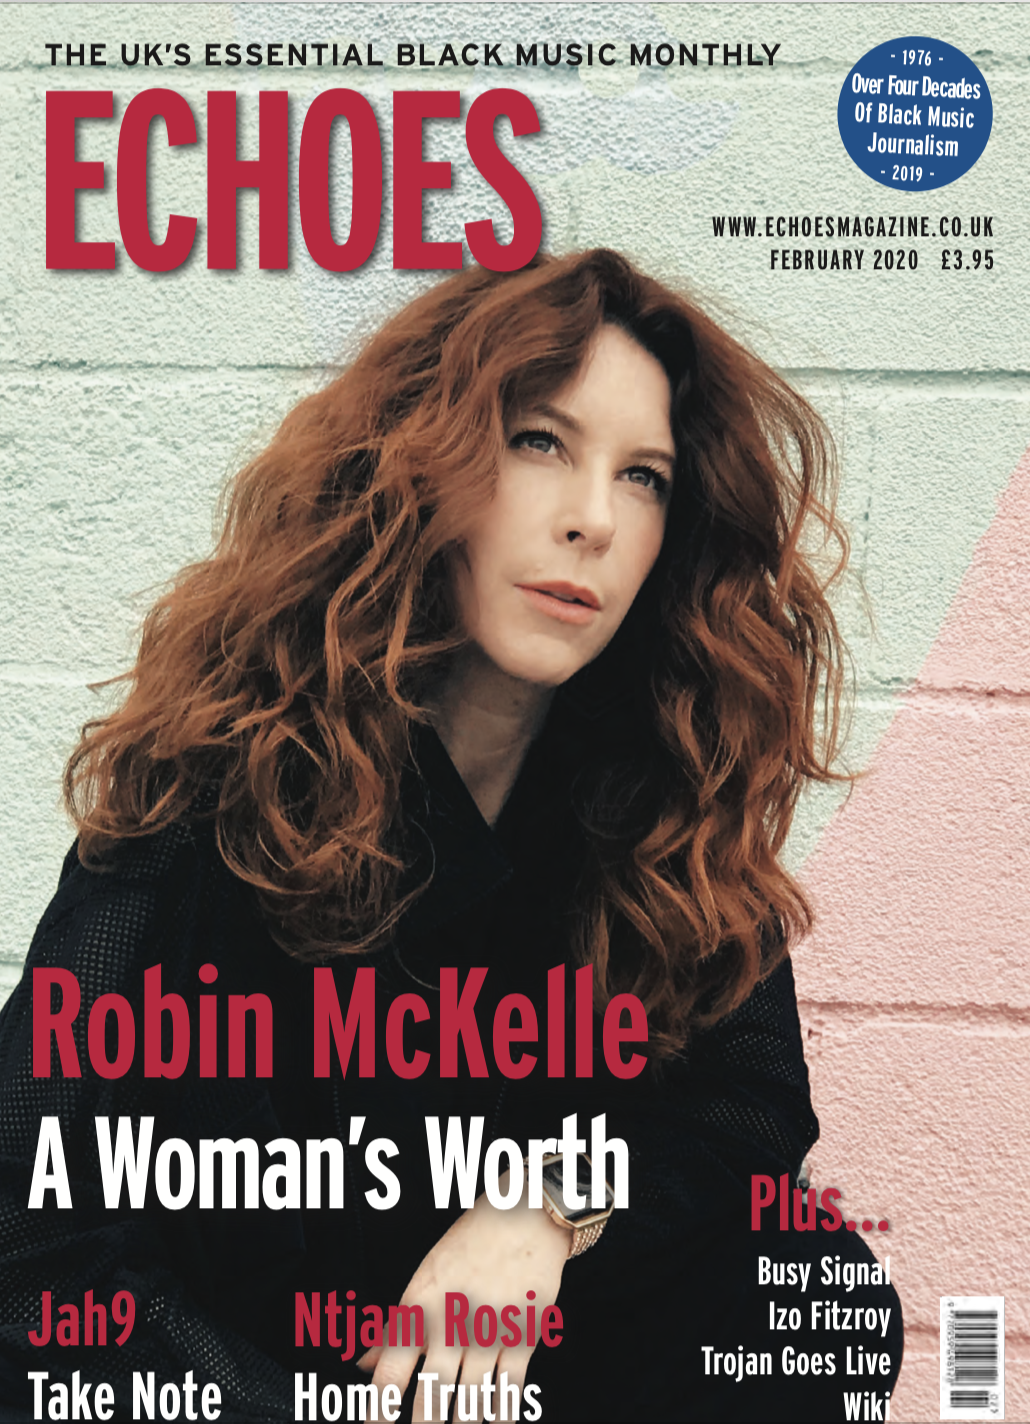 COVER: Robin McKelle on the cover of ECHOES